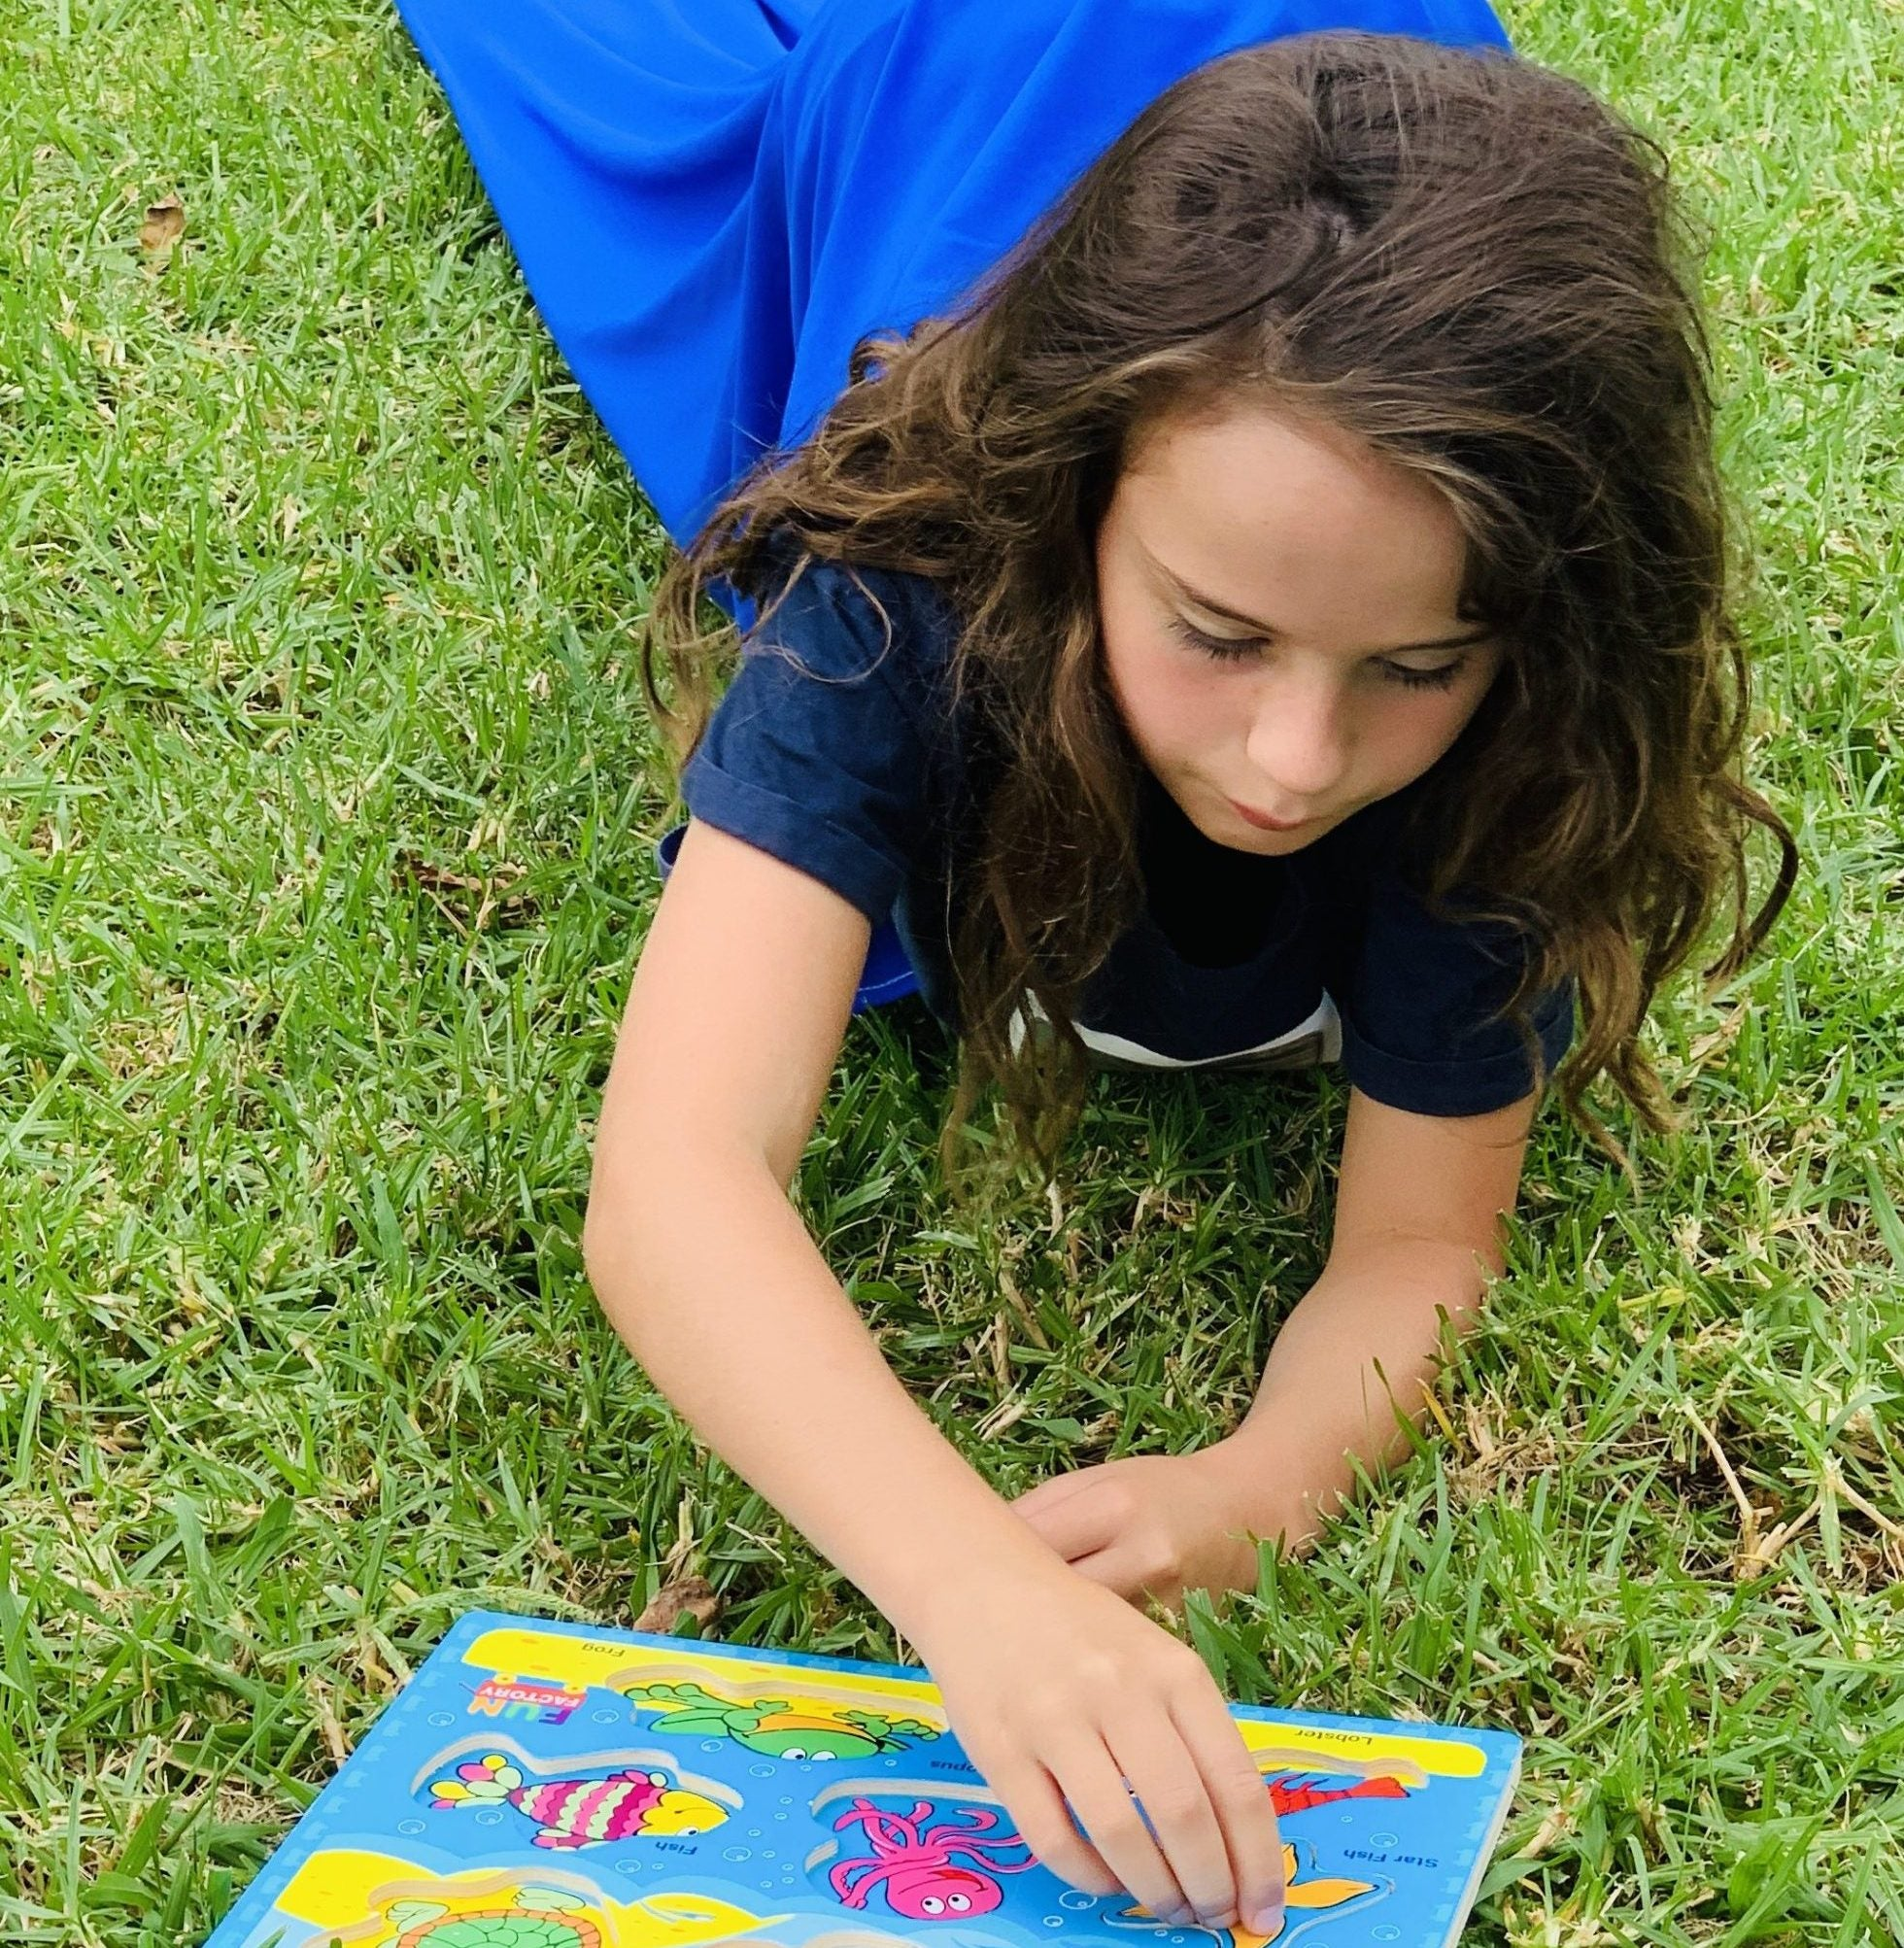 Girl lying on grass inside blue Lycra Tunnel playing game